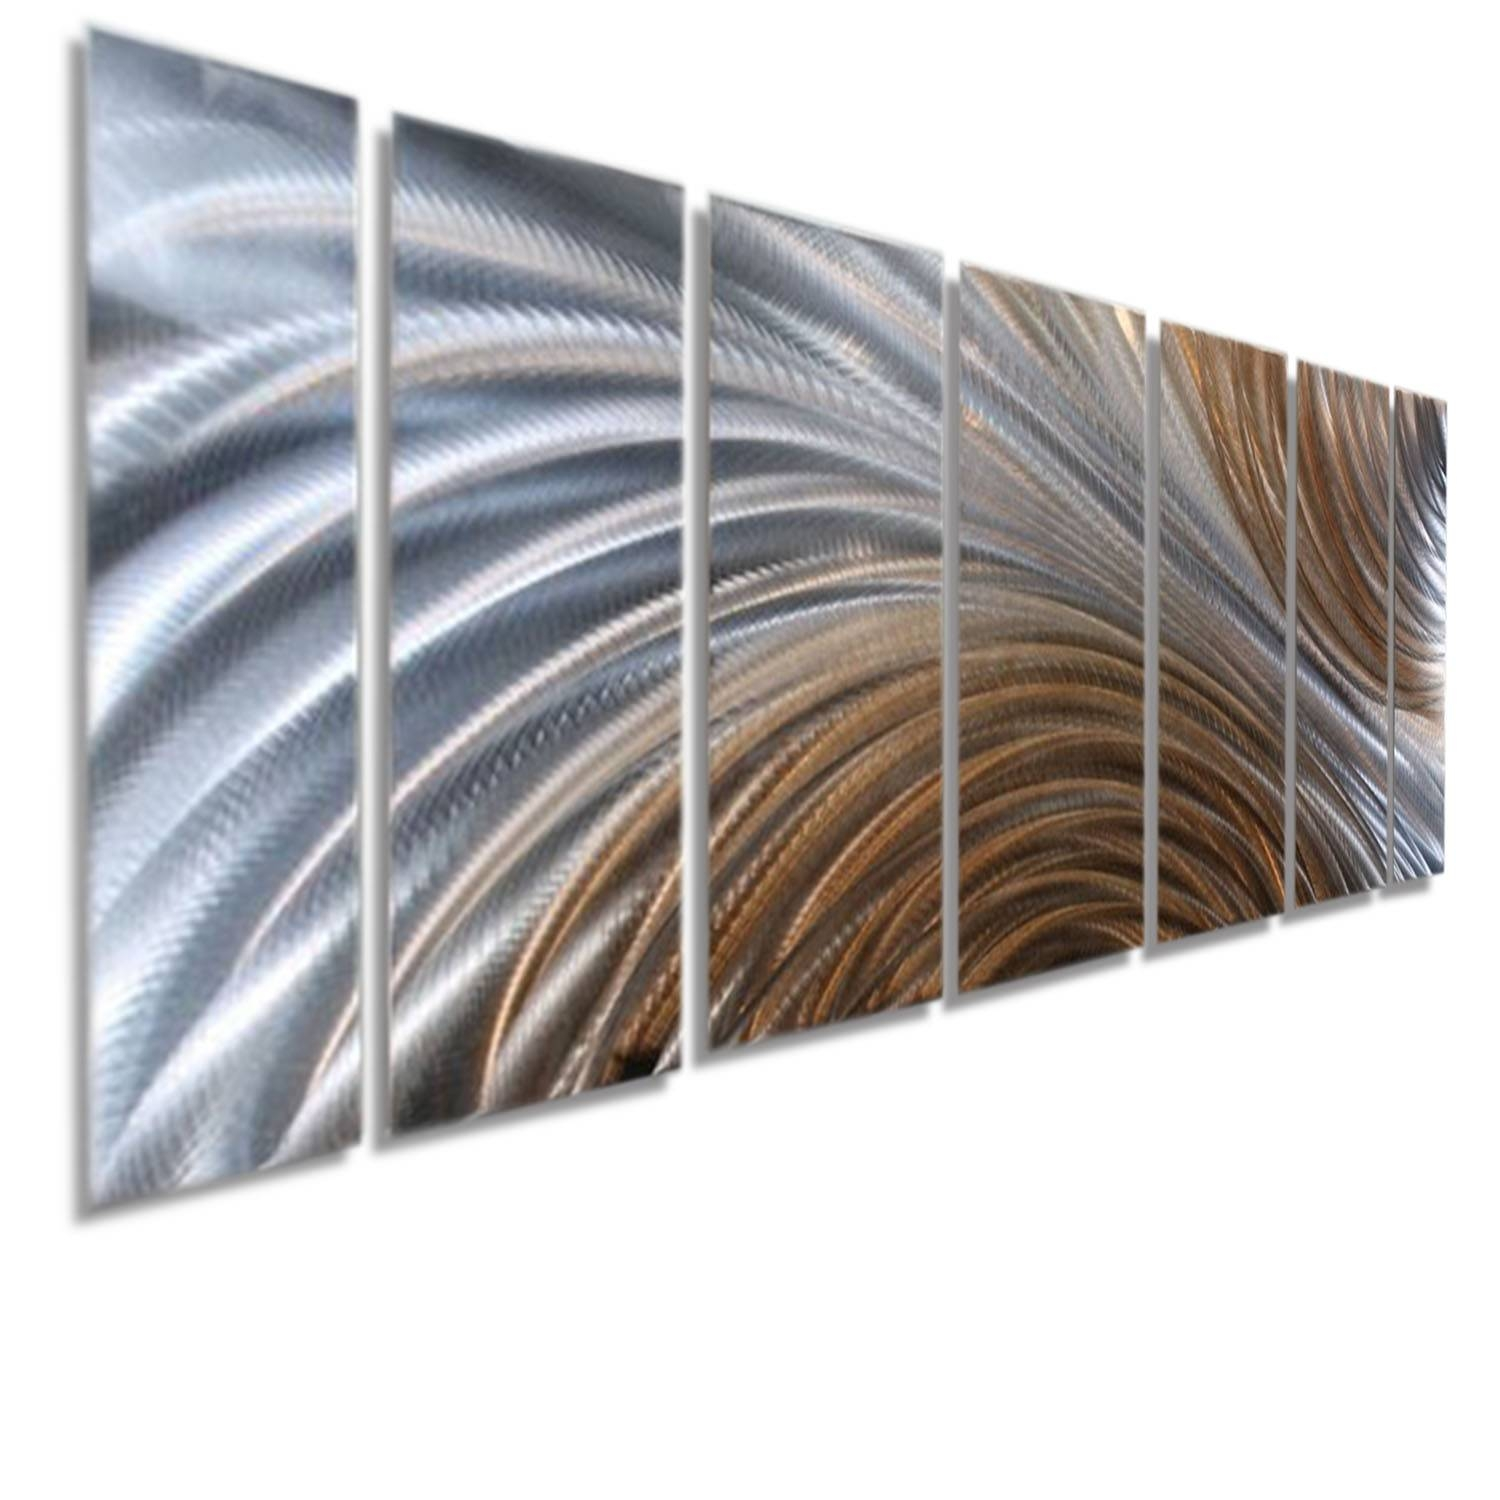 Amber Ascension Silver & Copper Abstract Metal Wall Artjon Throughout Most Current Large Abstract Metal Wall Art (View 3 of 20)